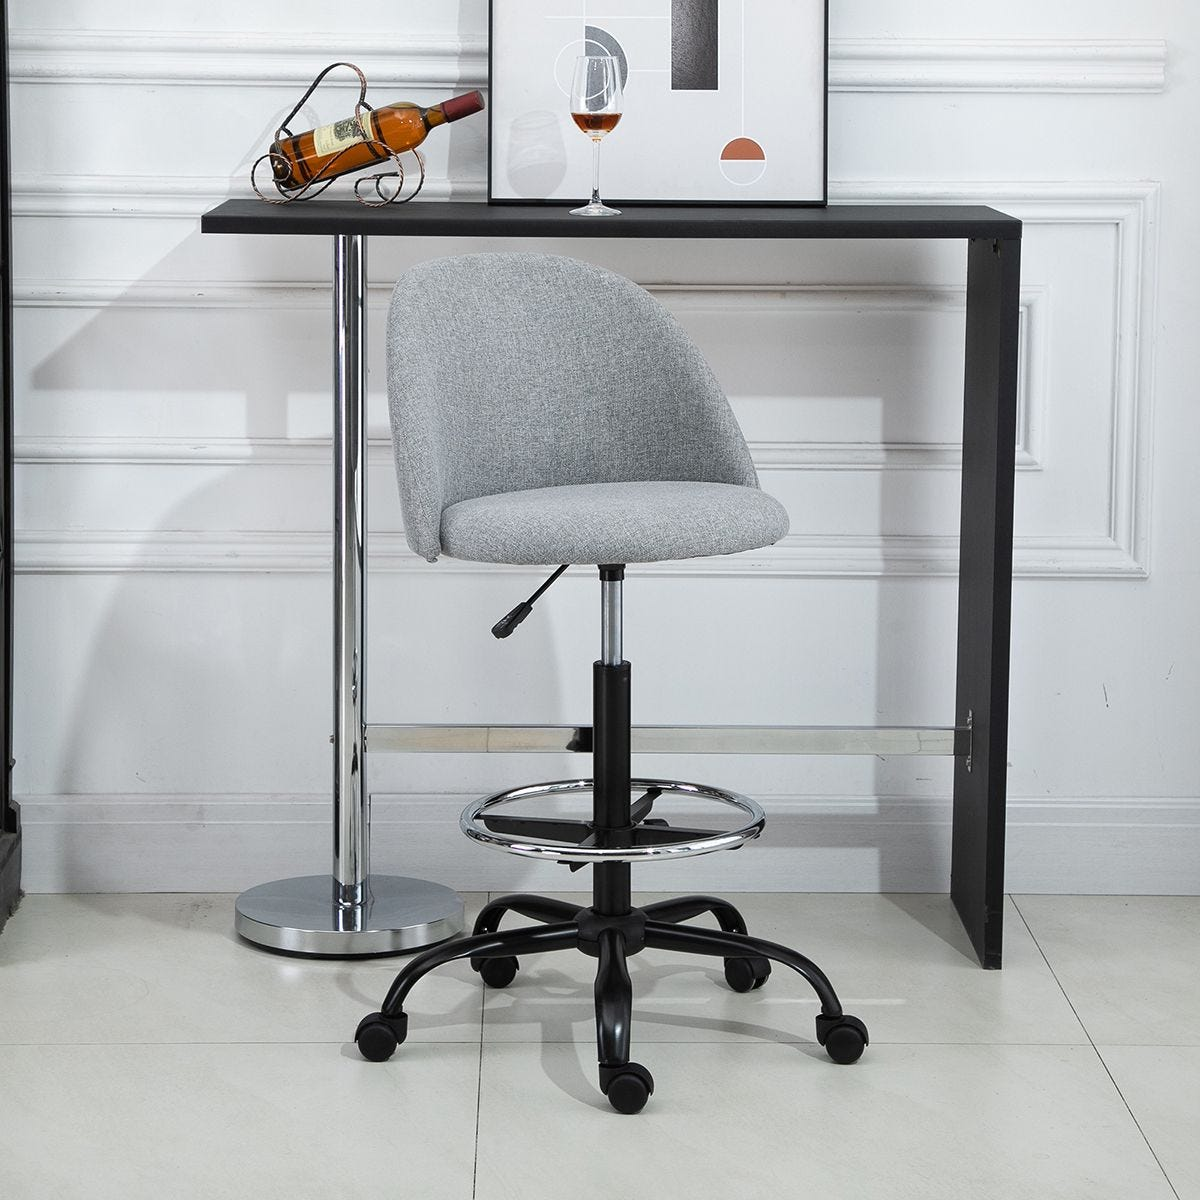 97cm Tall Home Office Chair Ergonomic With 5 Wheels Padded Grey